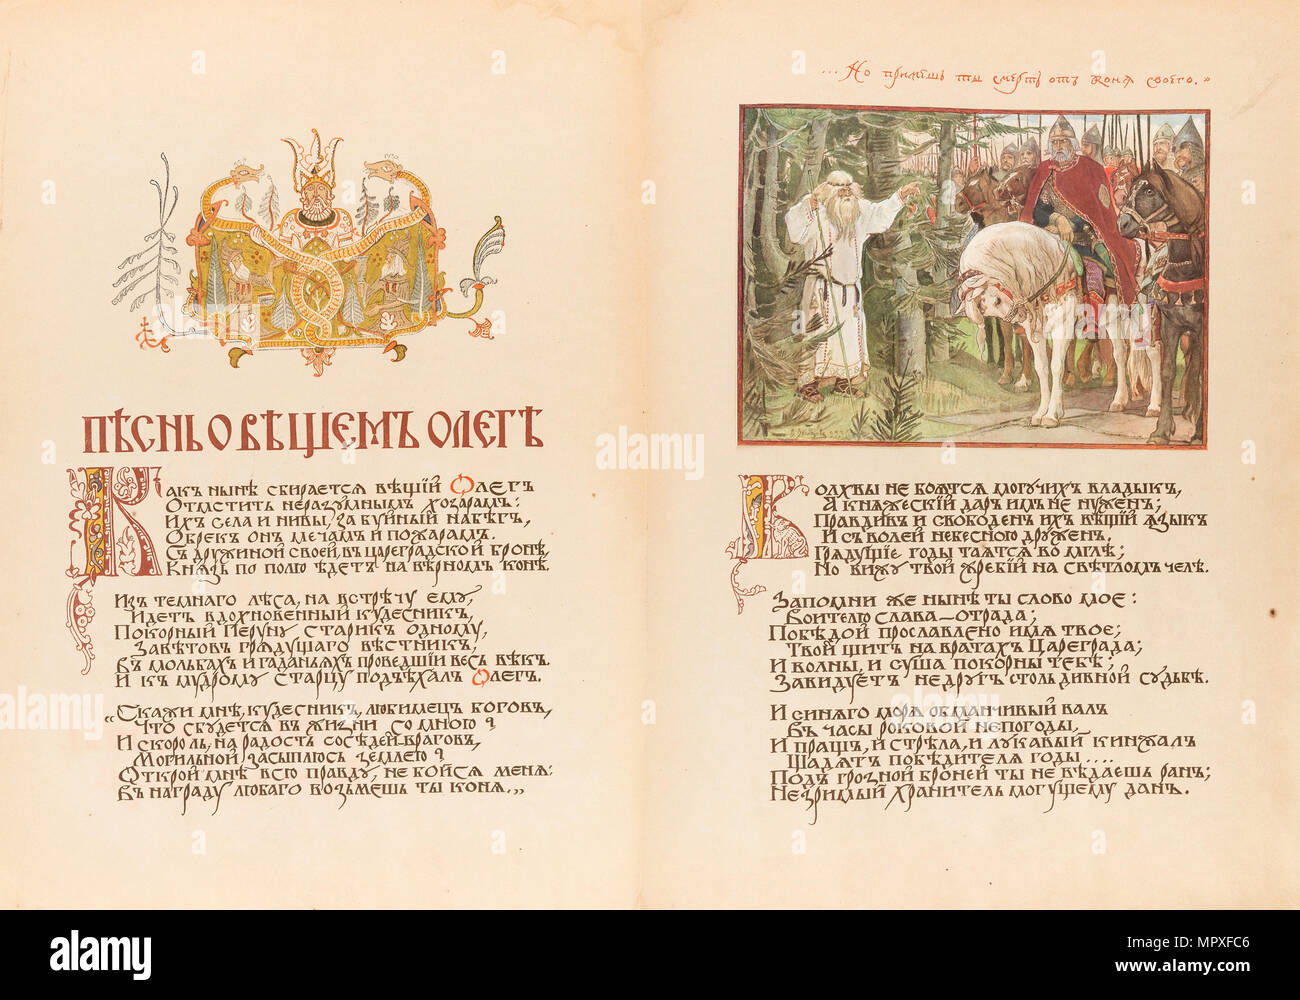 Canto of Oleg the Wise. Double page, 1899. - Stock Image